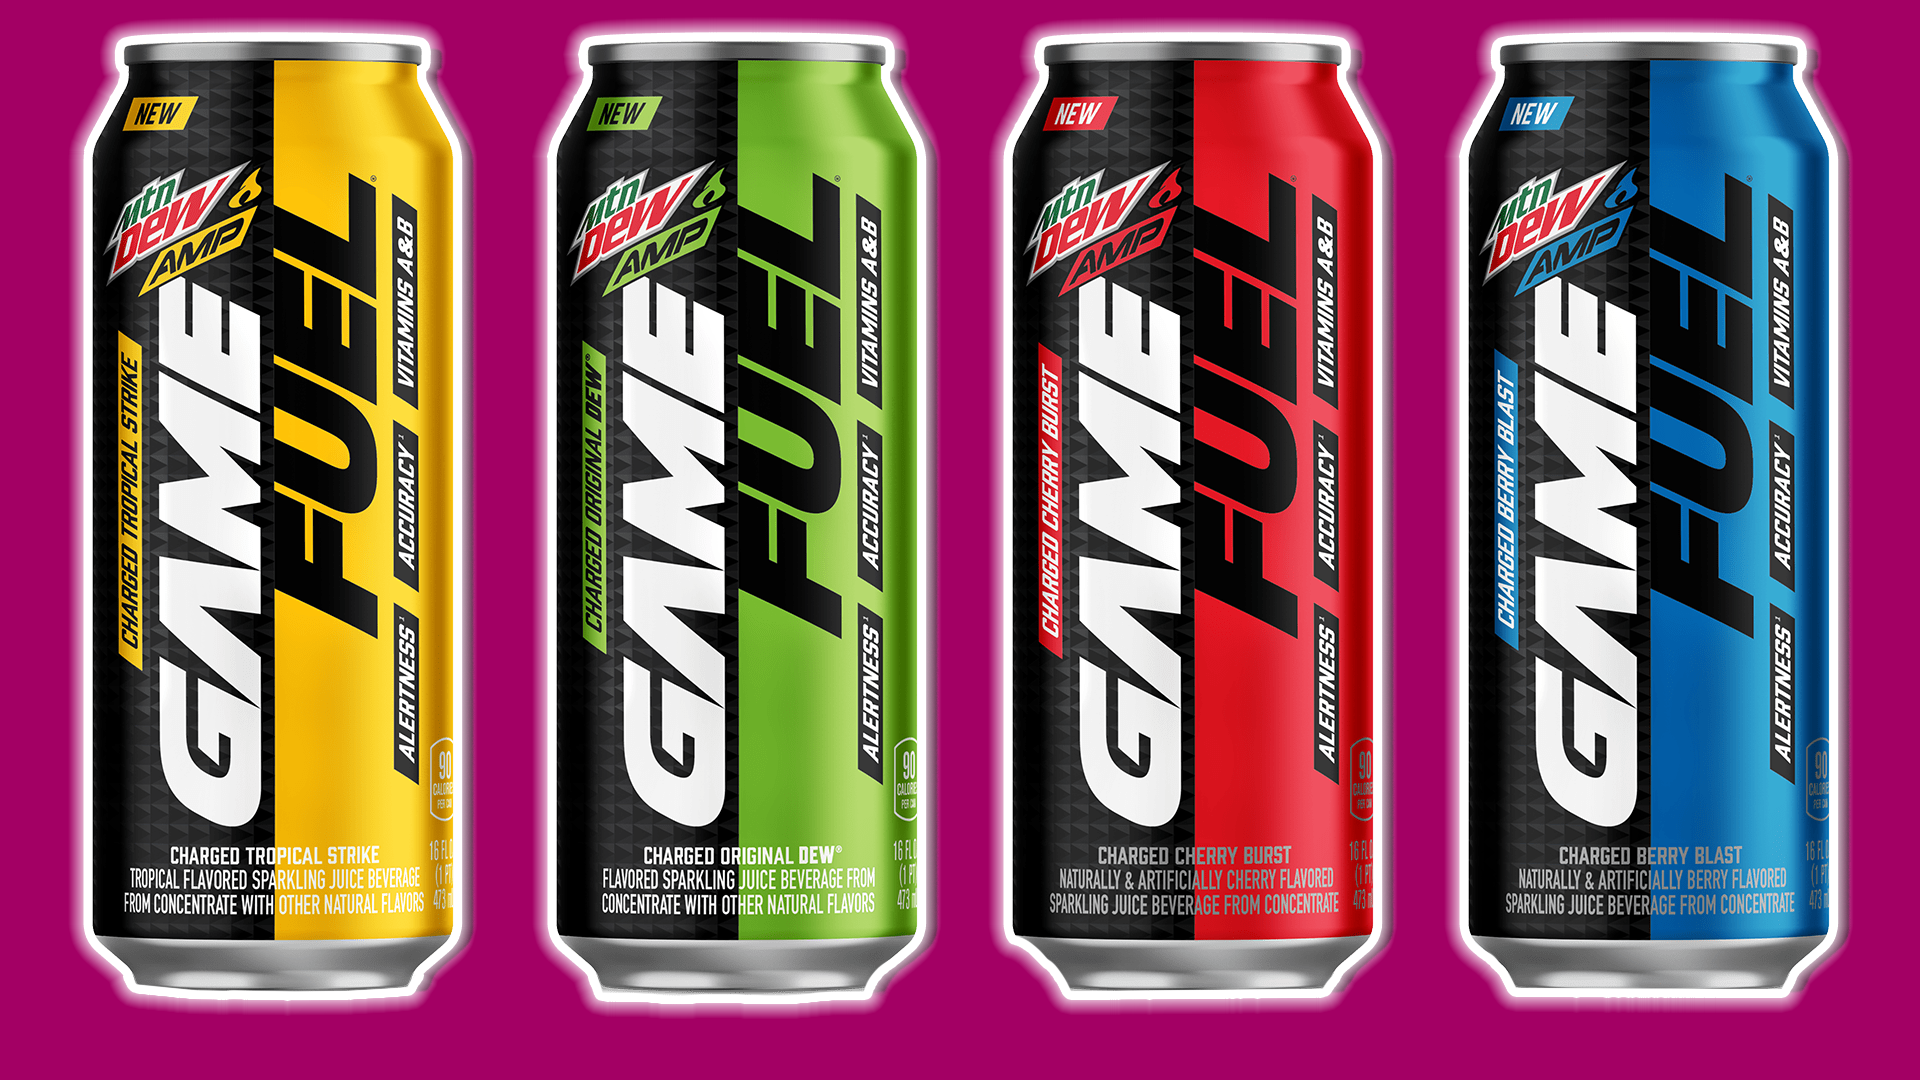 Every Flavour Of Mountain Dew Game Fuel Reviewed And Then Mixed Together